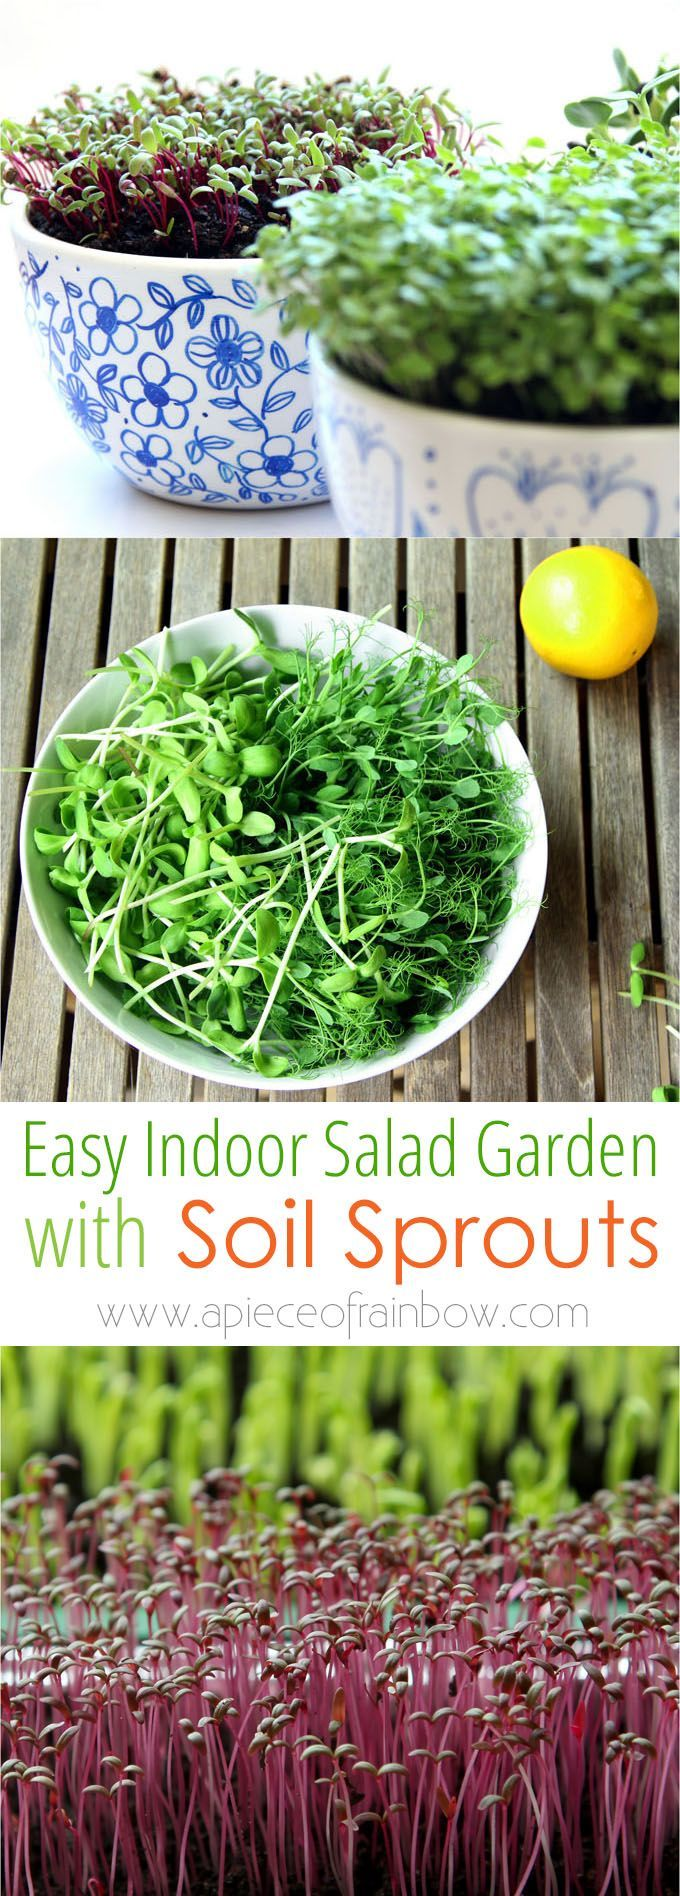 Grow an Indoor Salad Garden with Soil Sprouts is part of Winter garden Indoor - How to grow soil sprouts an easy method to grow nutritious sprouts and baby greens in less than 2 weeks  Great for small space and indoor winter gardening!